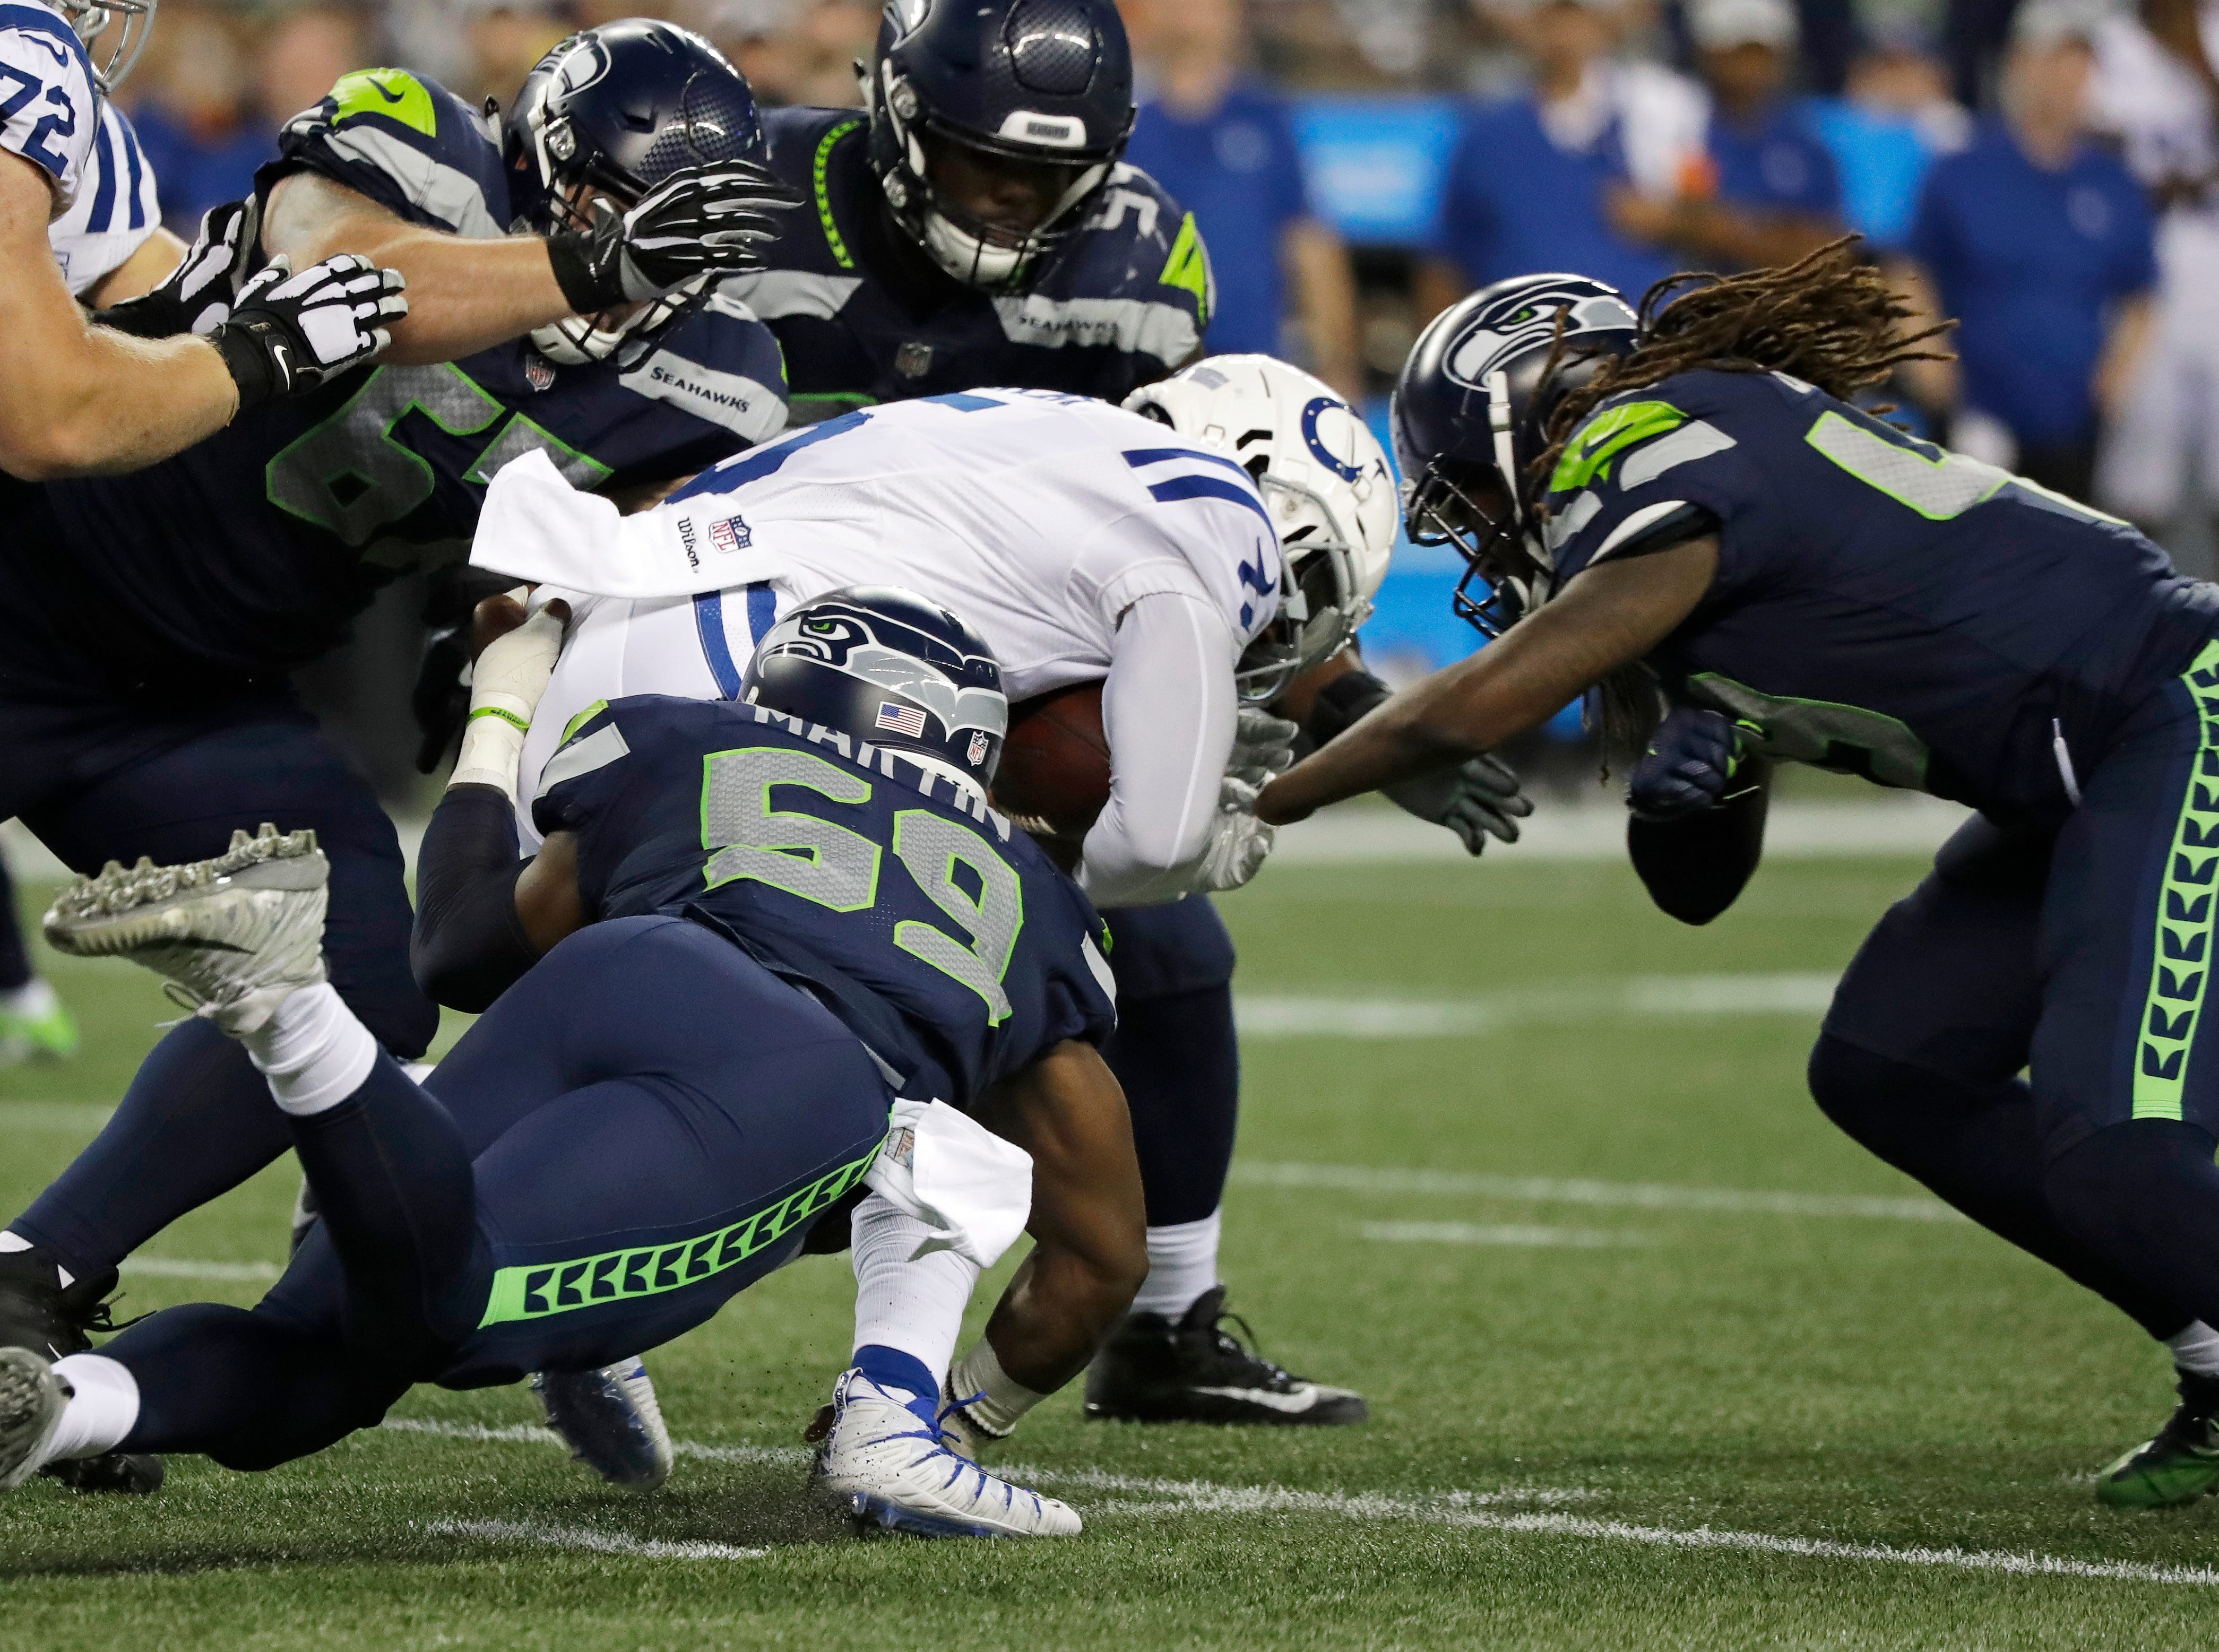 Indianapolis Colts quarterback Phillip Walker, center, is tackled by Seattle Seahawks linebacker Shaquem Griffin, right, and defensive end Jake Martin (59) during the second half of an NFL football preseason game, Thursday, Aug. 9, 2018, in Seattle. (AP Photo/Elaine Thompson)